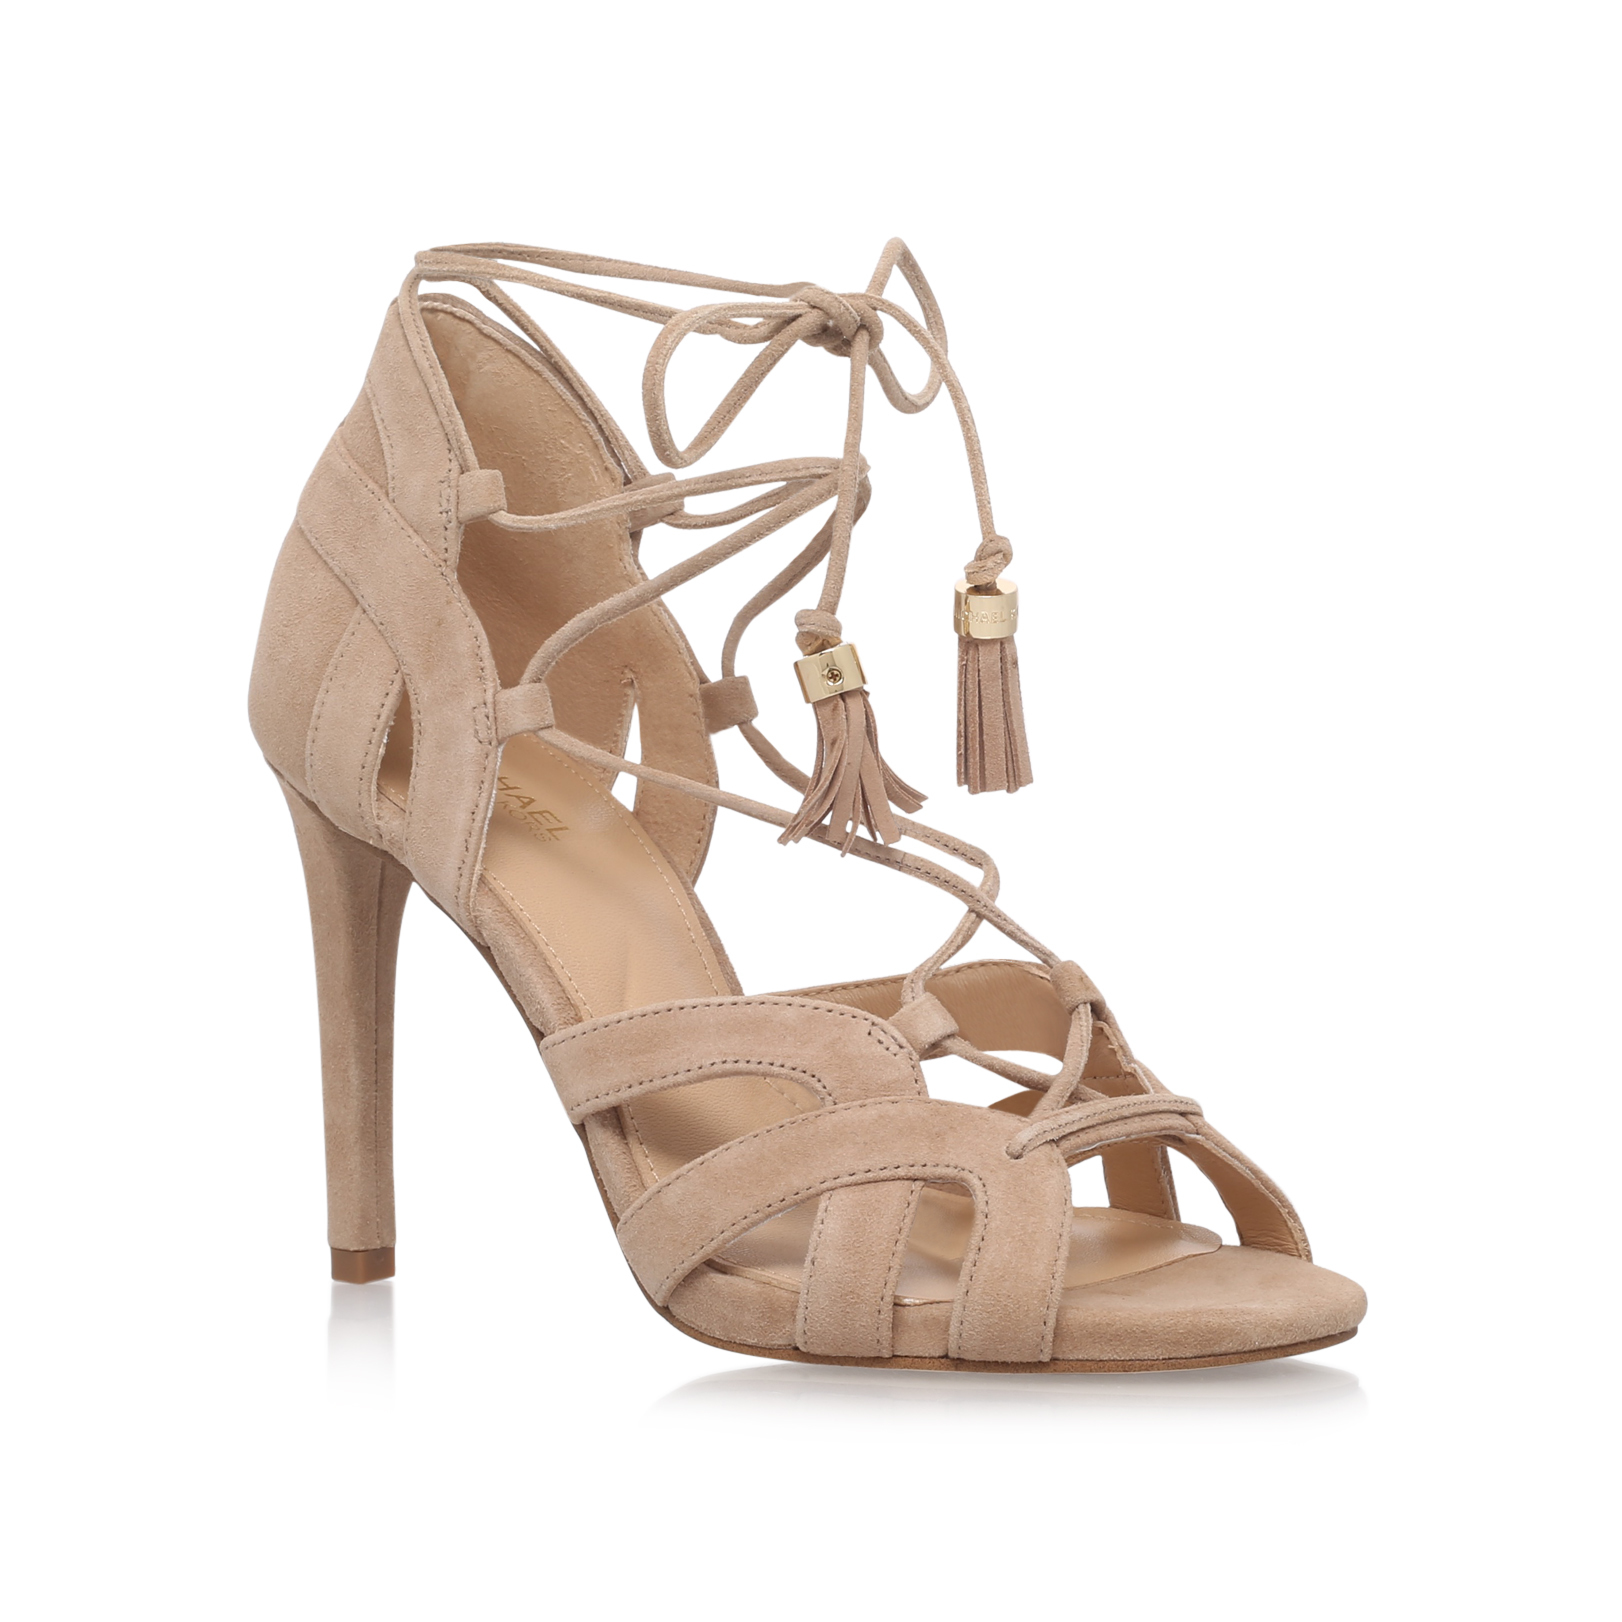 148bf9e94 MIRABEL SANDAL Michael Michael Kors Mirabel Taupe Suede high Heel Occasion  Shoes by MICHAEL MICHAEL KORS